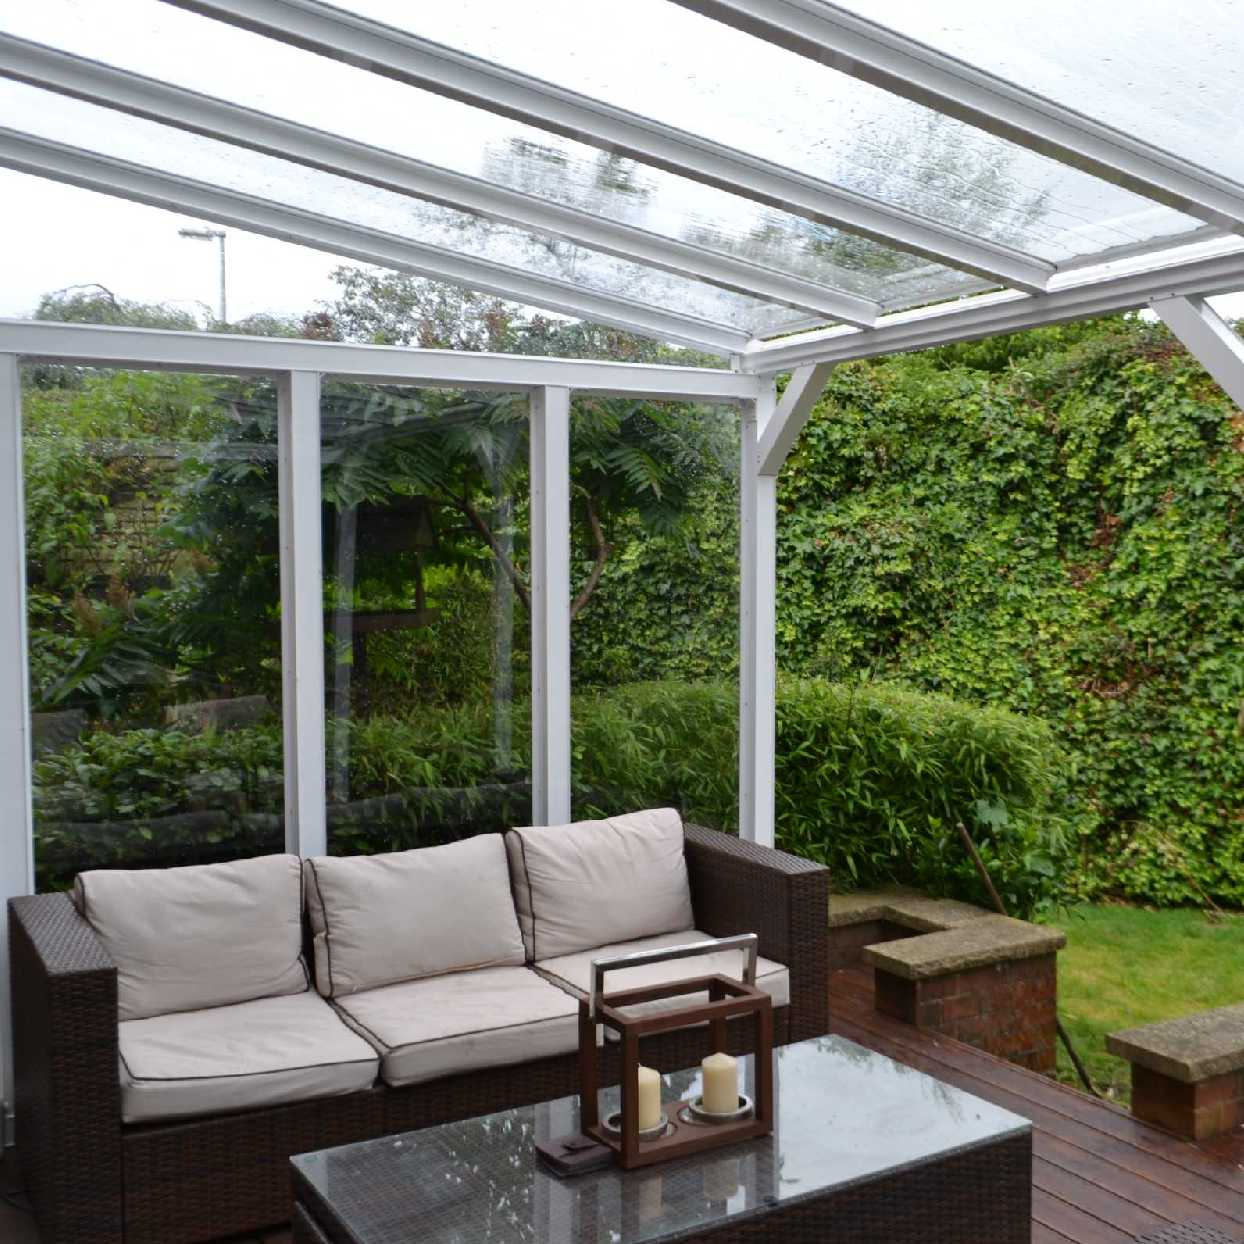 Omega Smart White Lean-To Canopy with 6mm Glass Clear Plate Polycarbonate Glazing - 6.3m (W) x 3.0m (P), (4) Supporting Posts